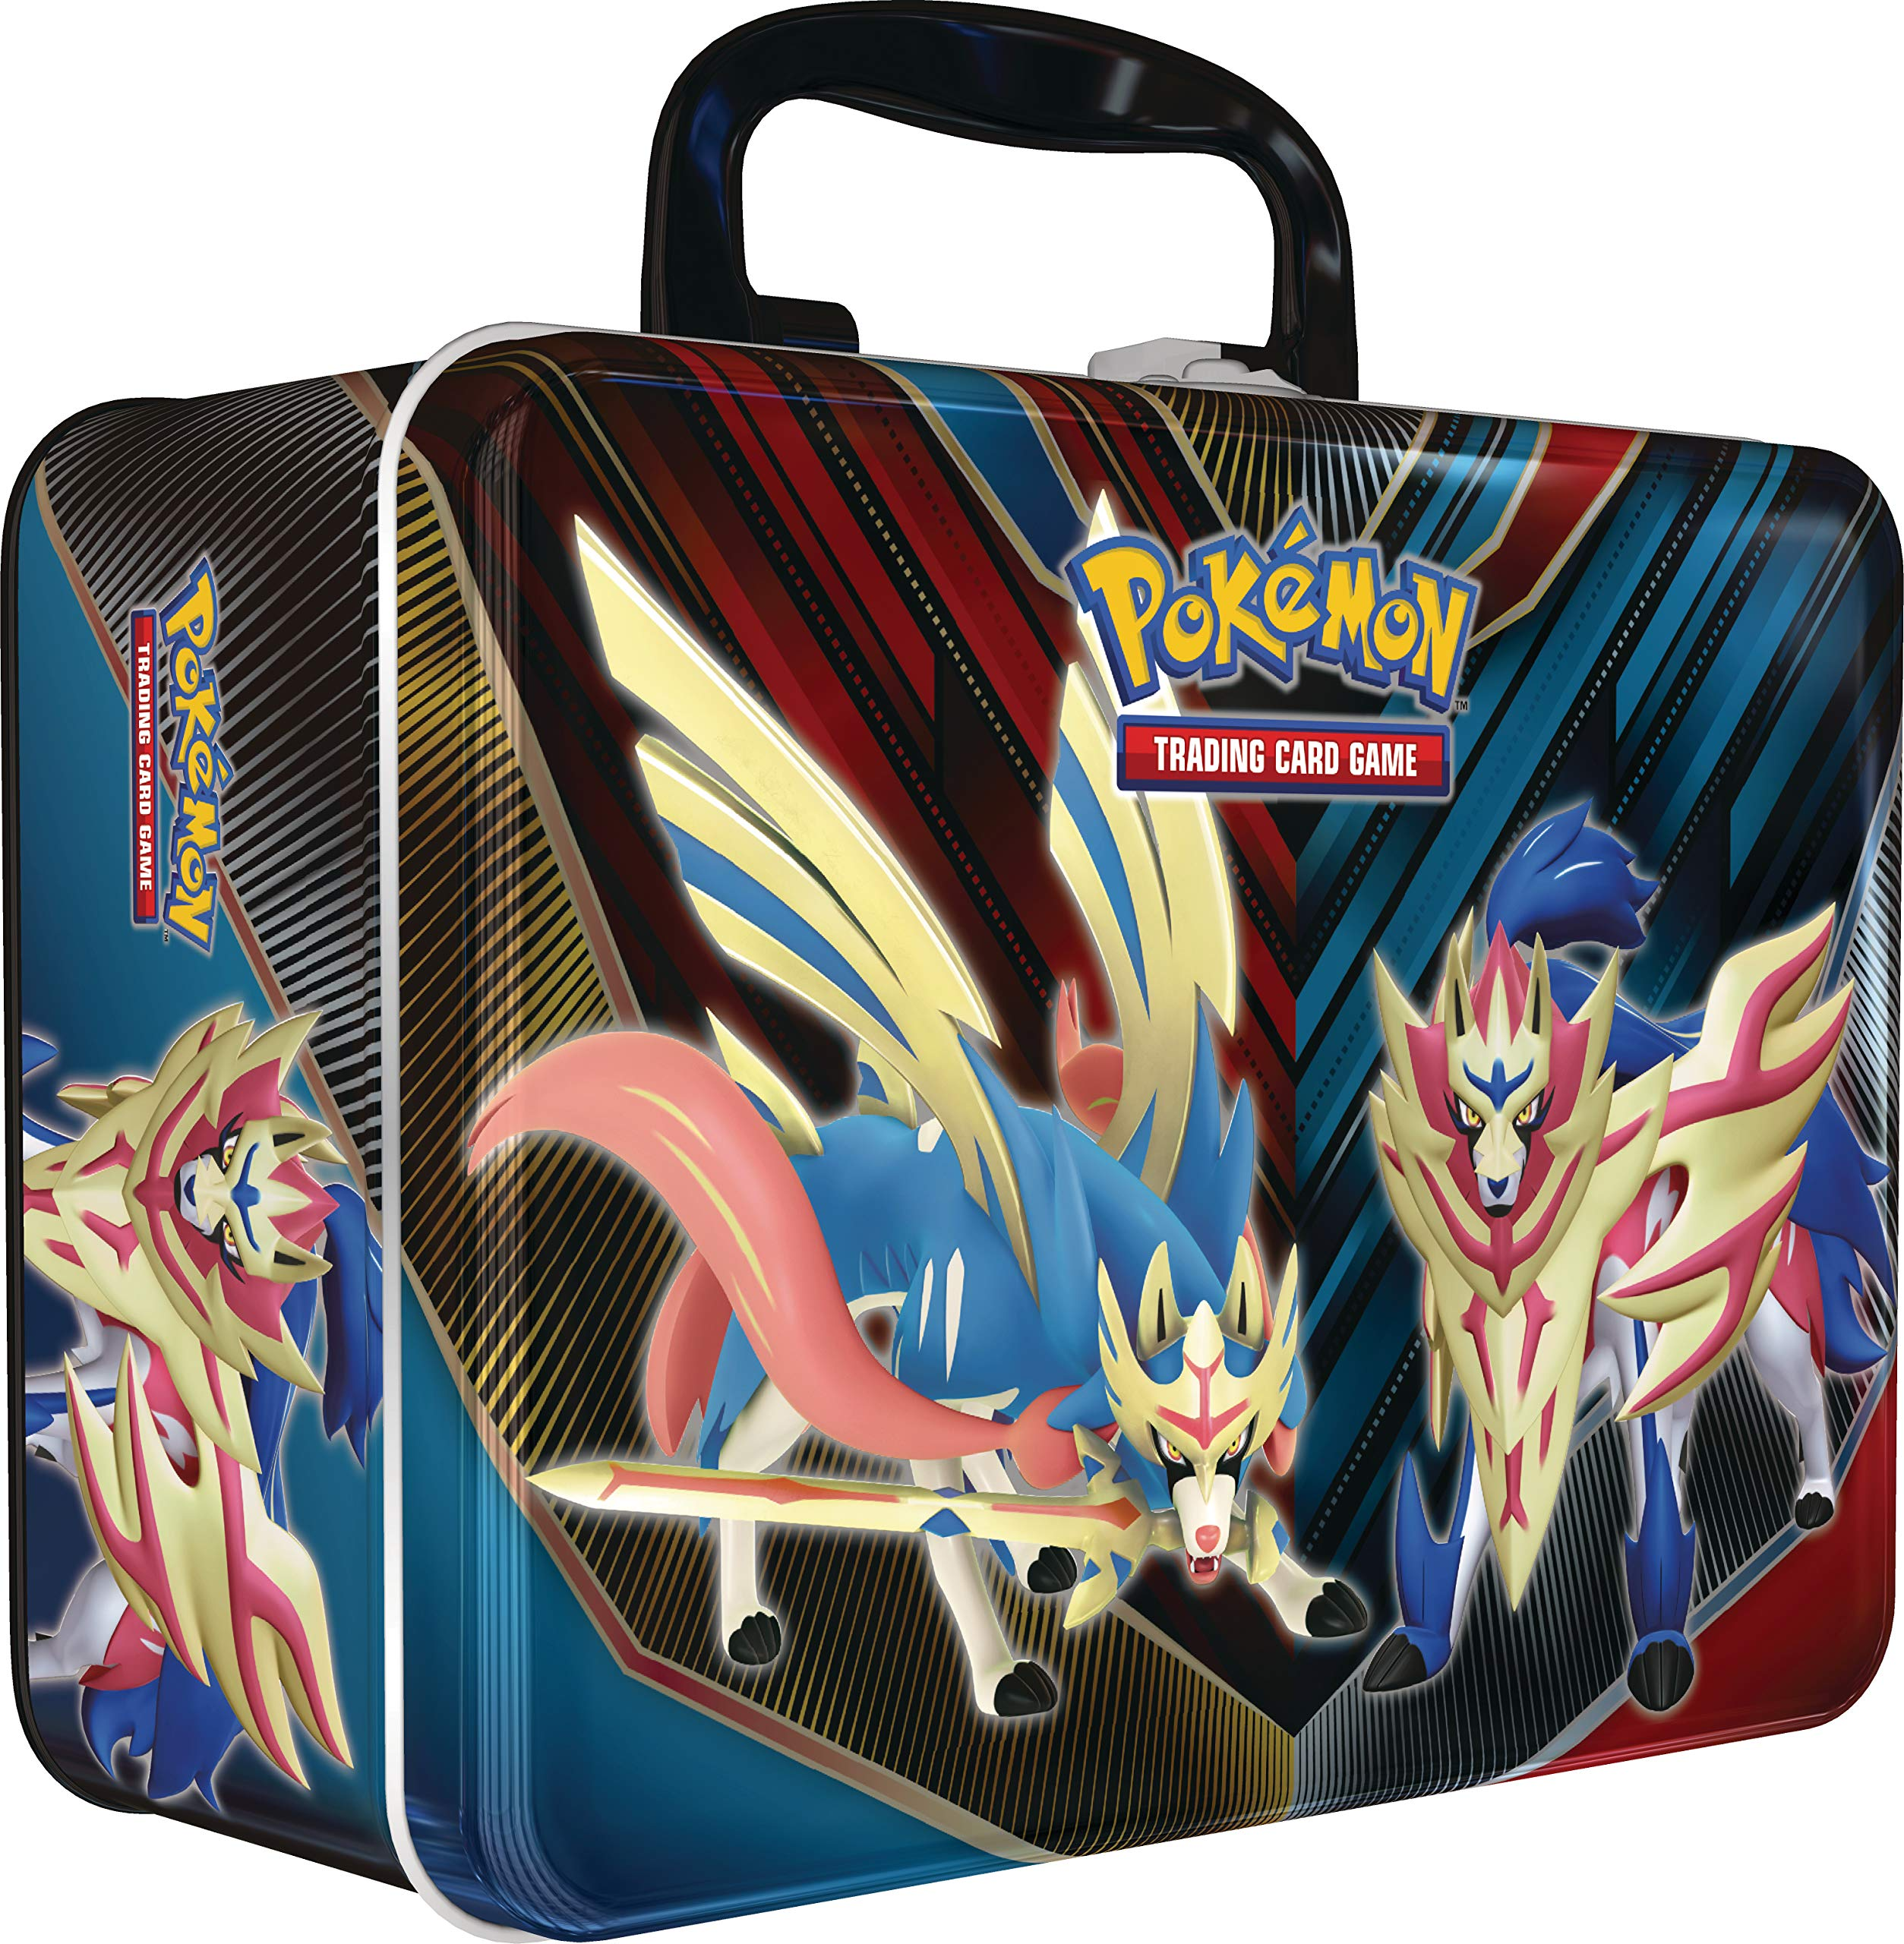 Amazon Com Pokemon Tcg Collectors Chest Tin Spring 2020 5 Booster Packs 3 Foil Promo Cards Toys Games Trainer goes to battle nessa for a badge with his new there's new pokemon sword and shield tins in stores! pokemon tcg collectors chest tin spring 2020 5 booster packs 3 foil promo cards